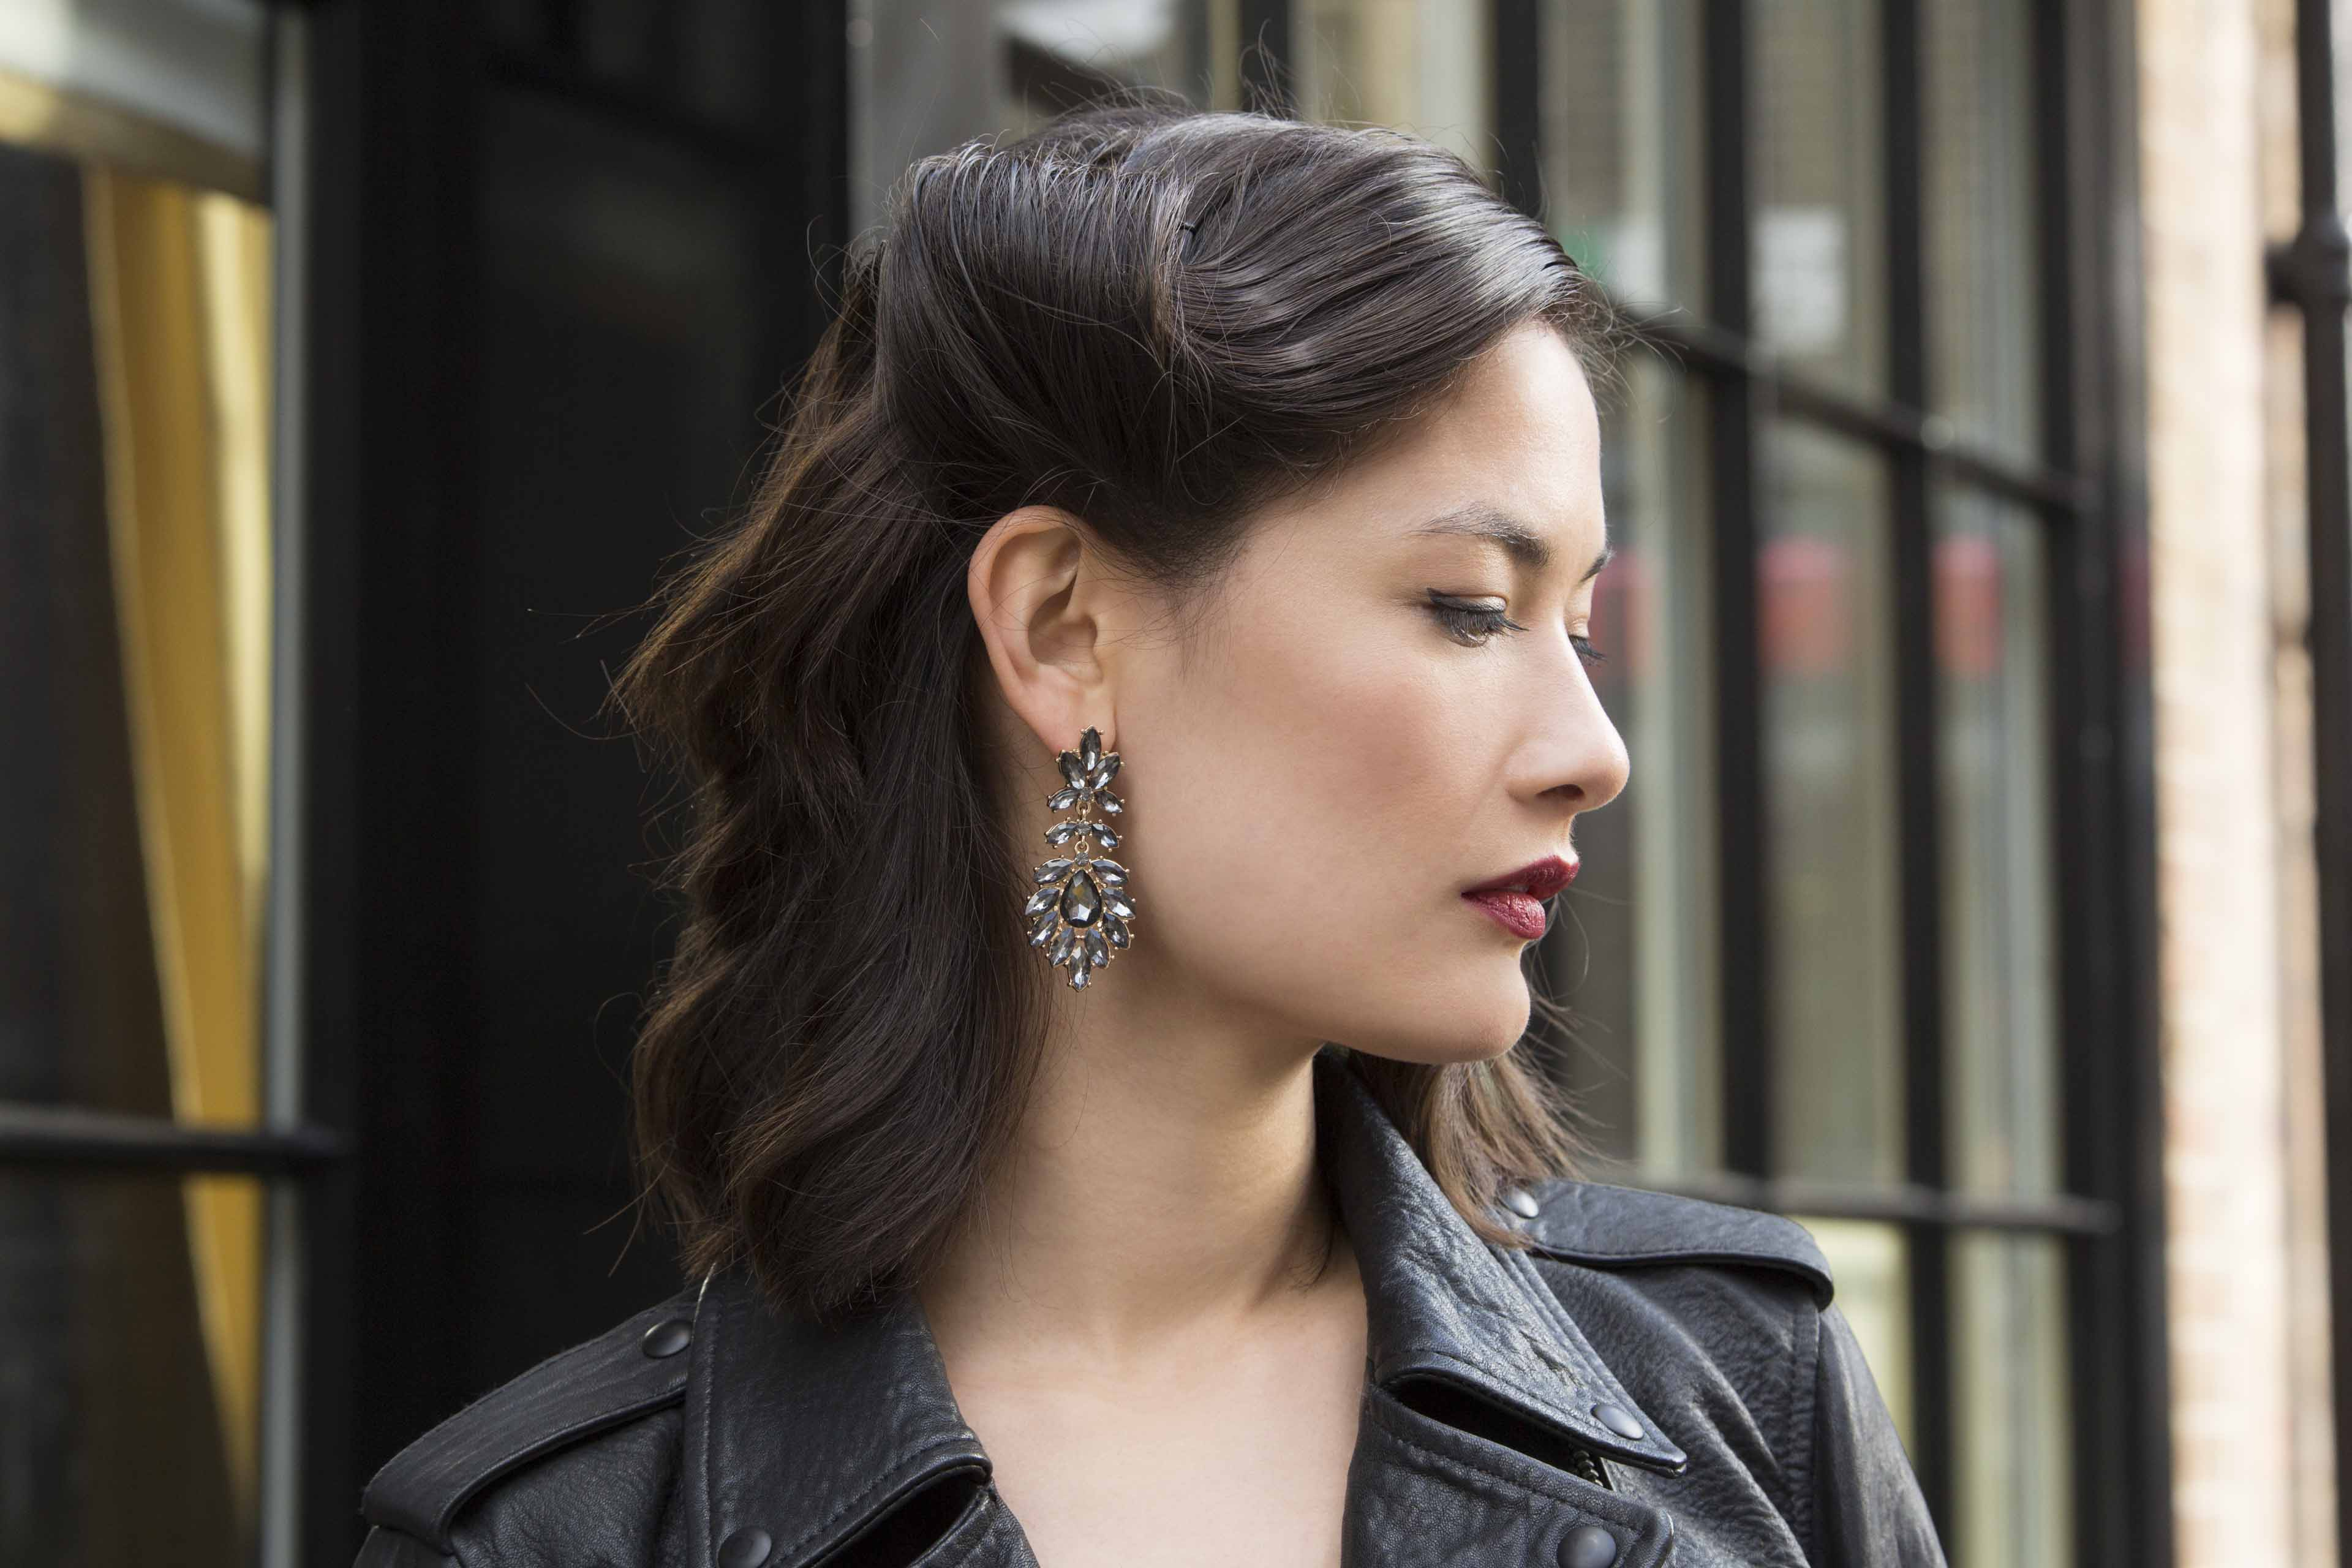 Christmas party hairstyles for short hair: All Things Hair - IMAGE - glamorous vintage retro roll brown hair